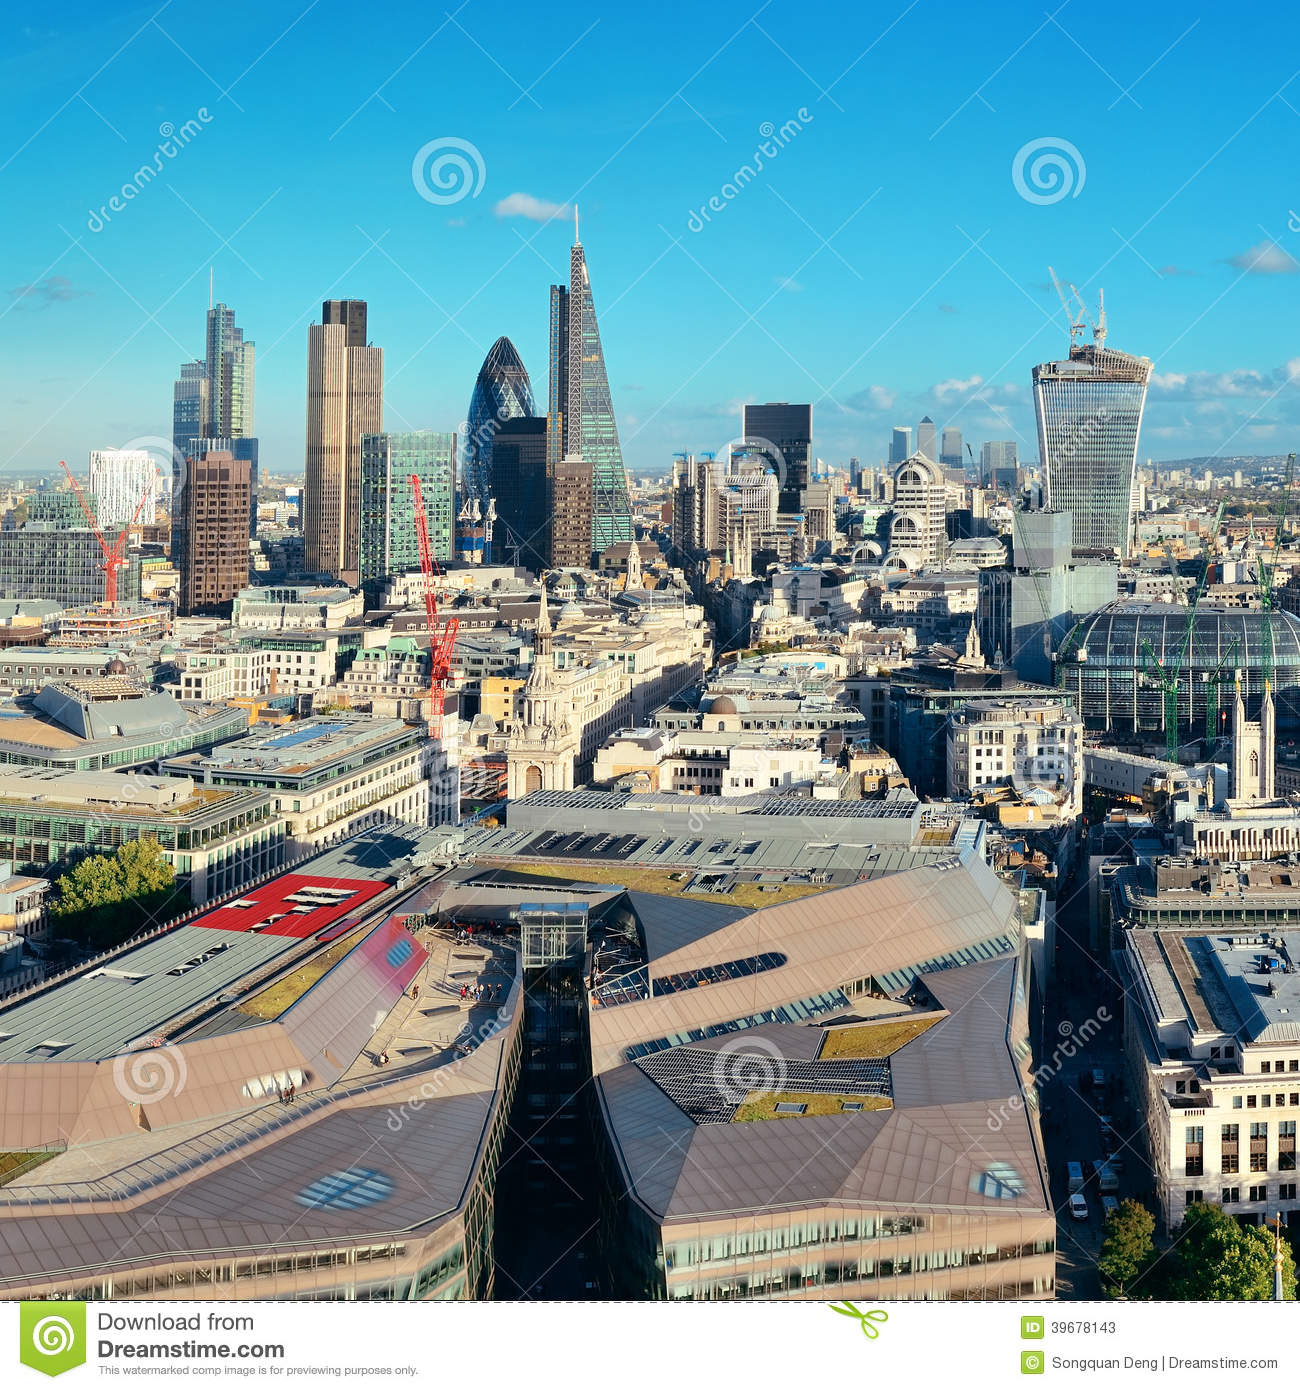 Urban View: London City Rooftop Stock Photo